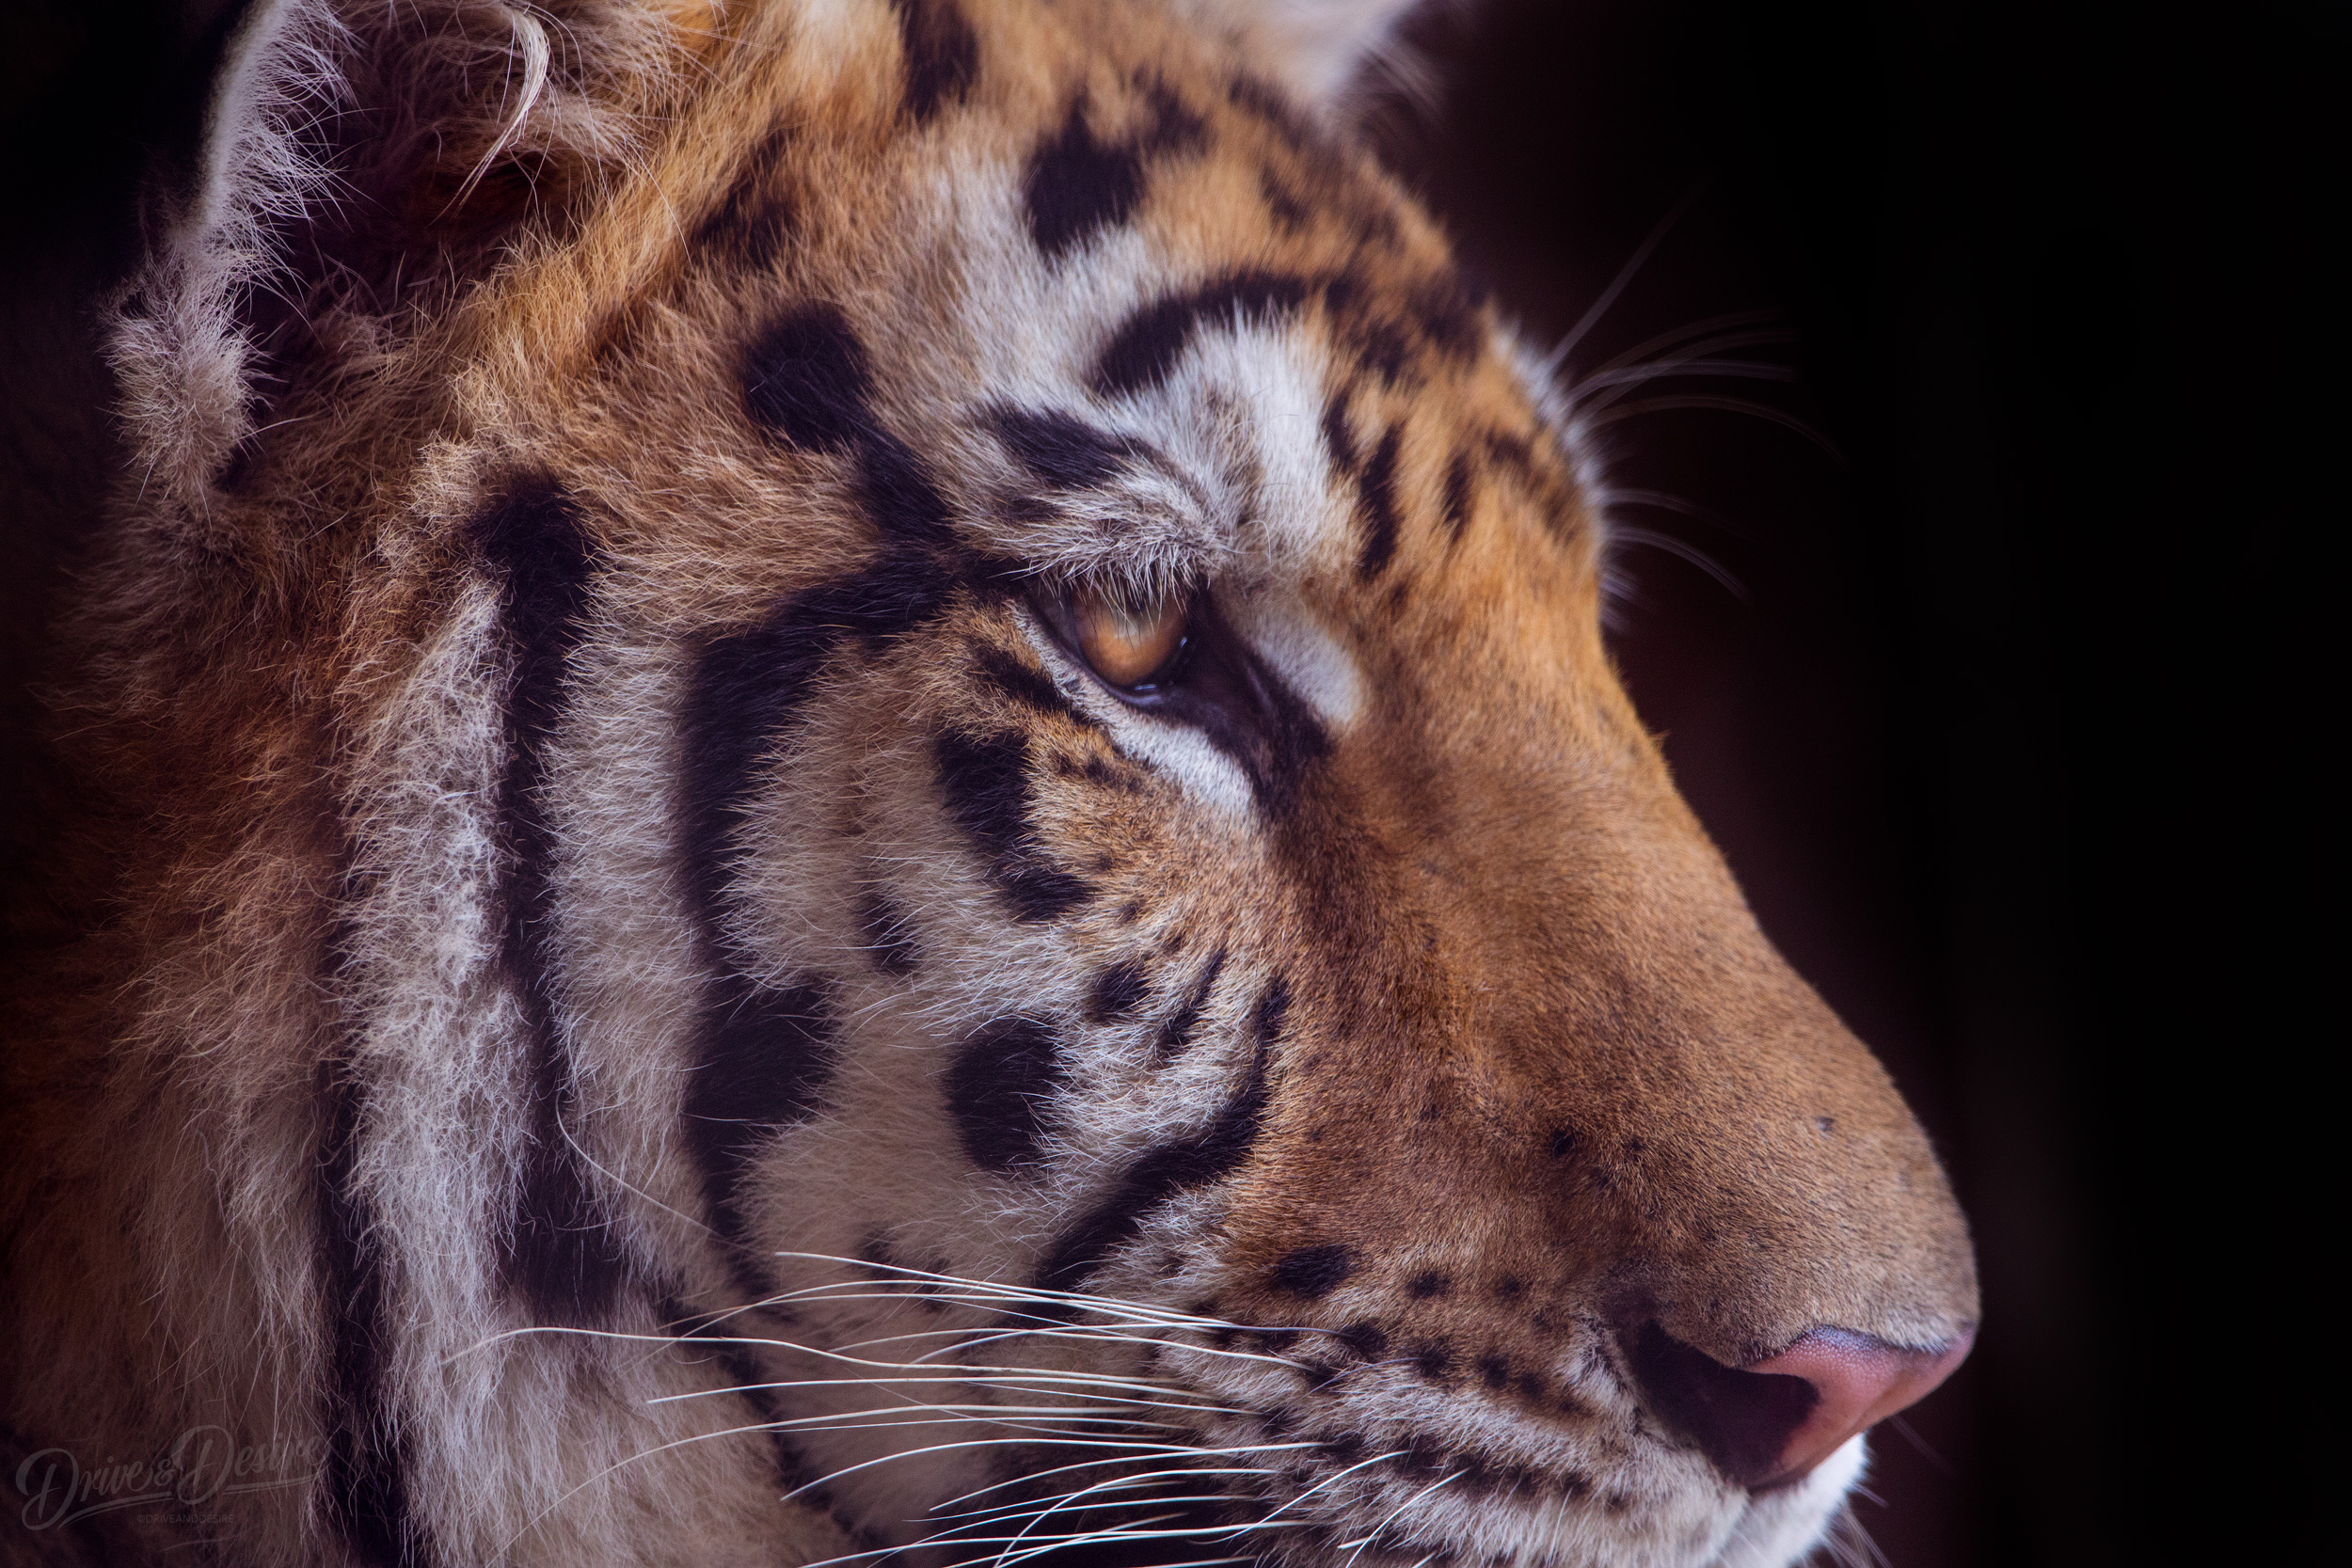 Tiger-World-IMG_5728-website-Edit.jpg